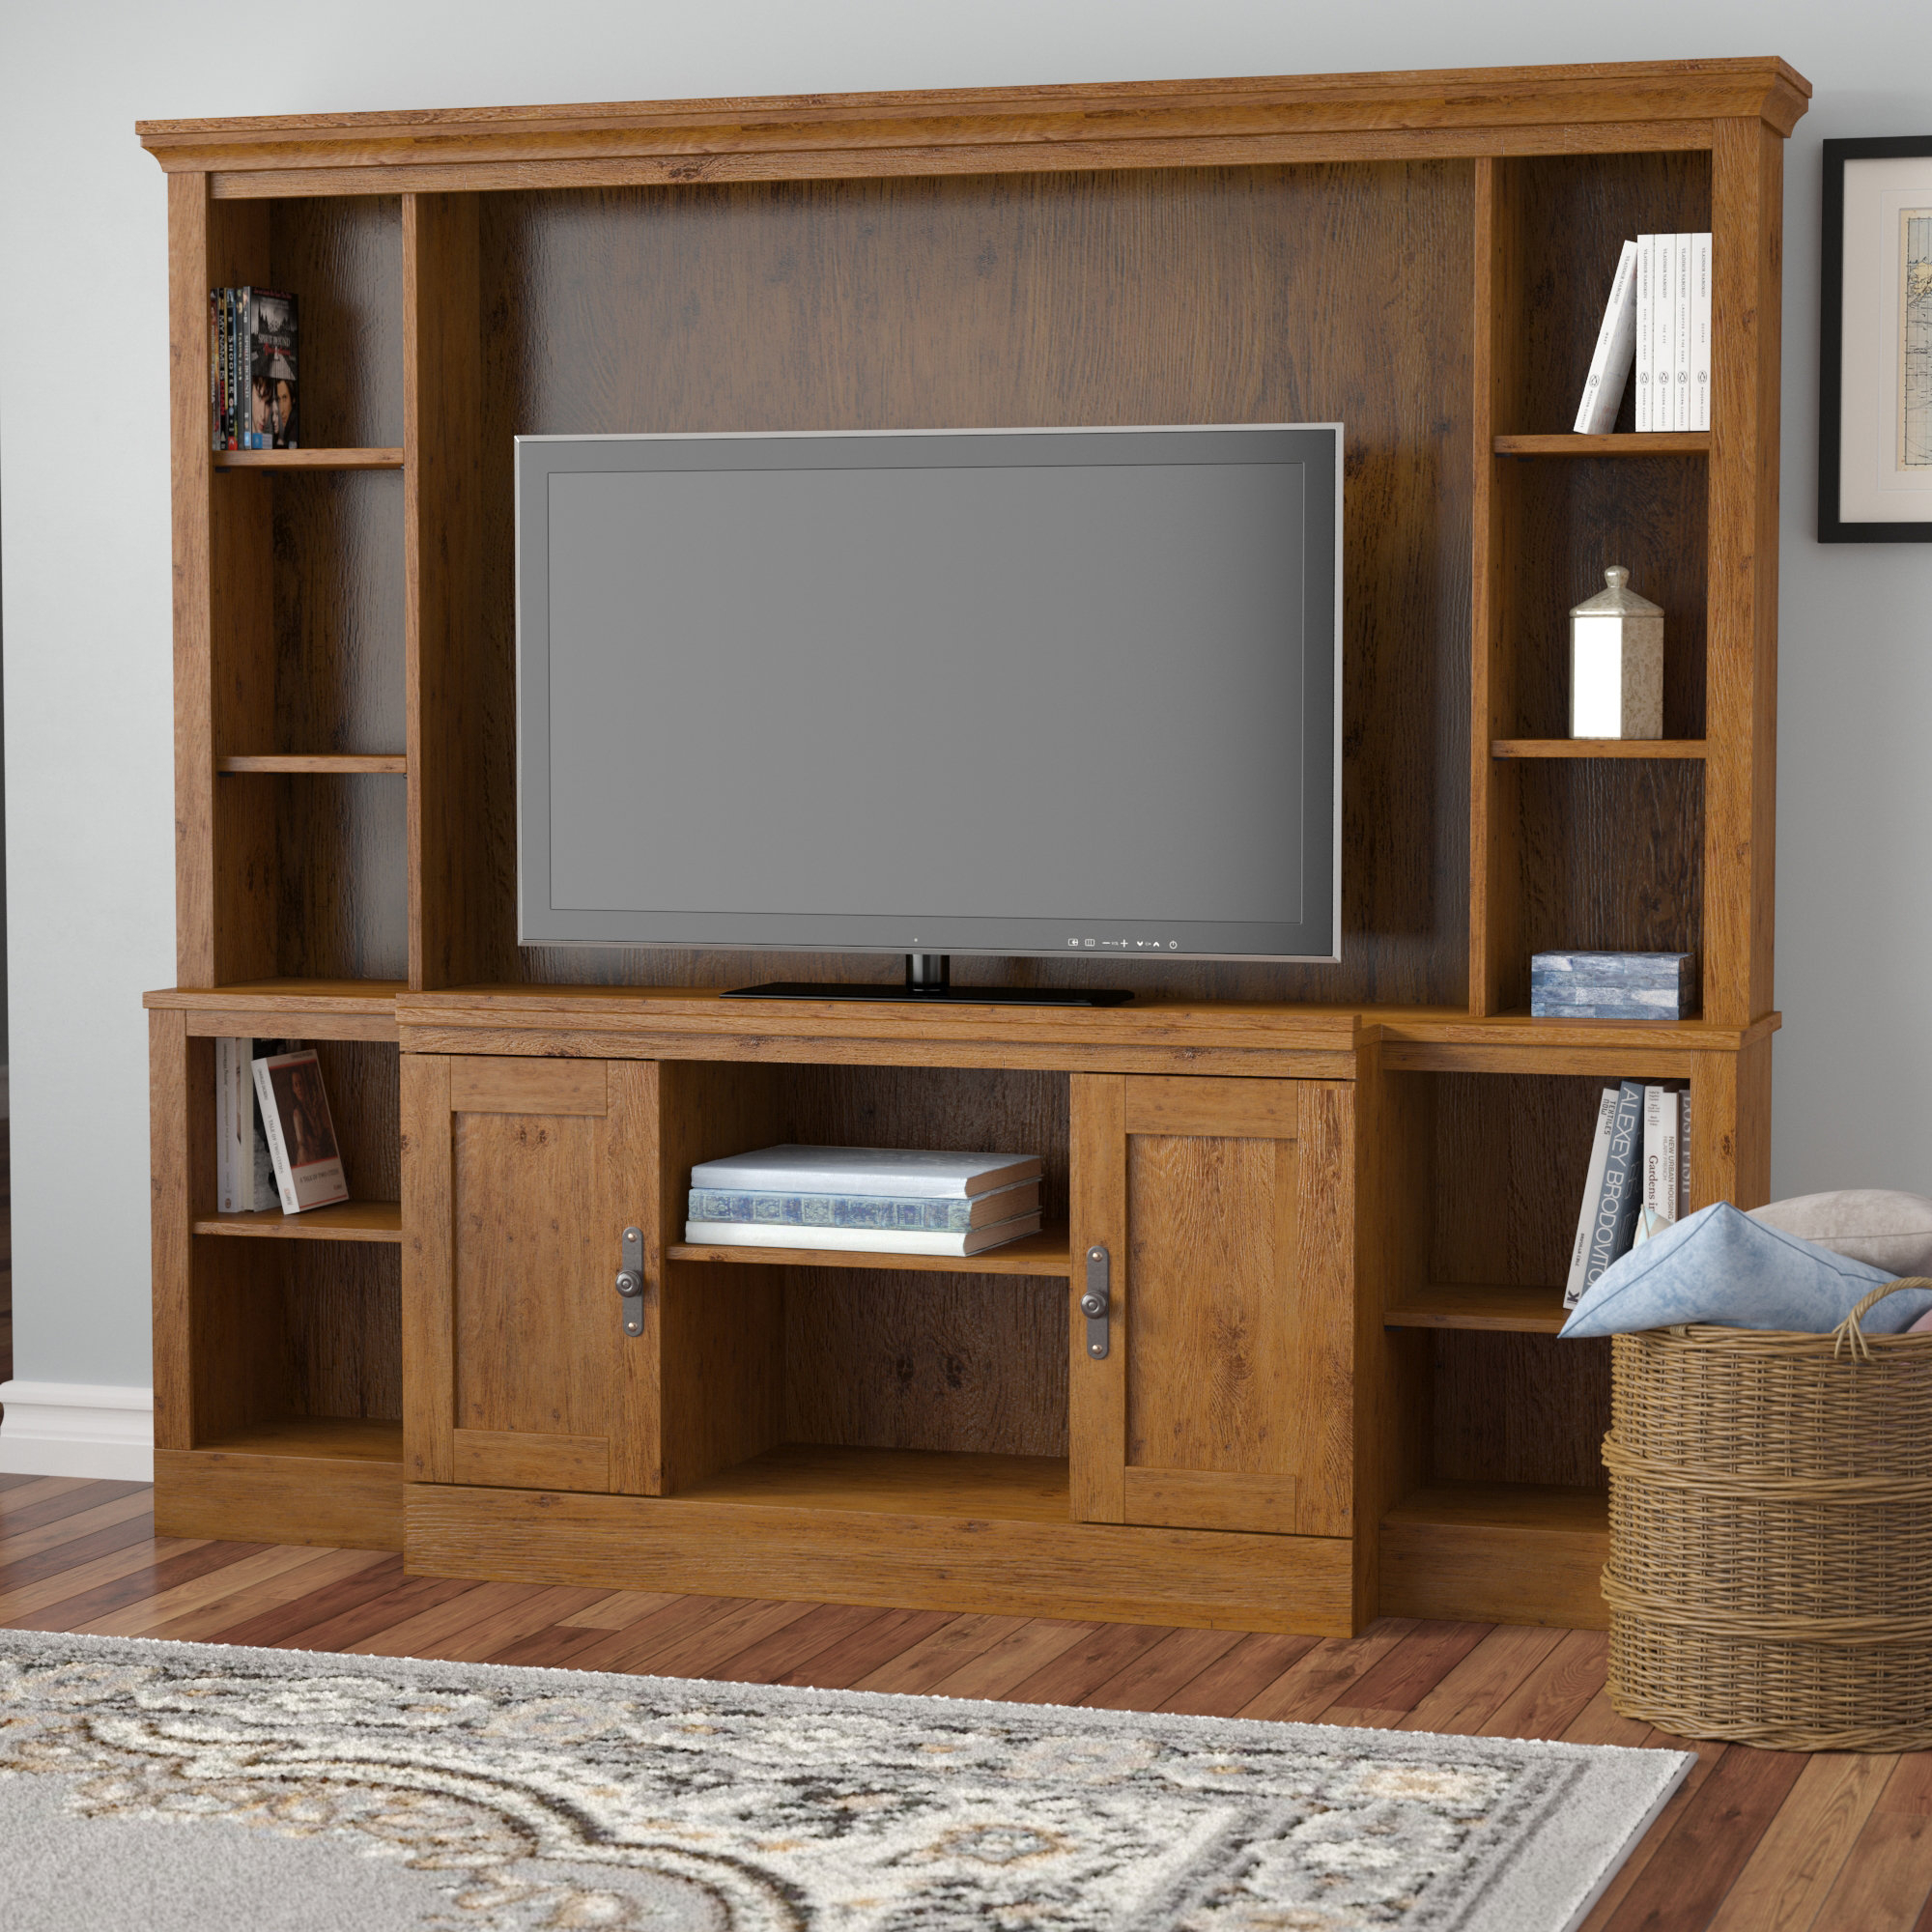 Tv Stands With Hutch You'll Love | Wayfair Pertaining To Kilian Grey 74 Inch Tv Stands (View 4 of 30)